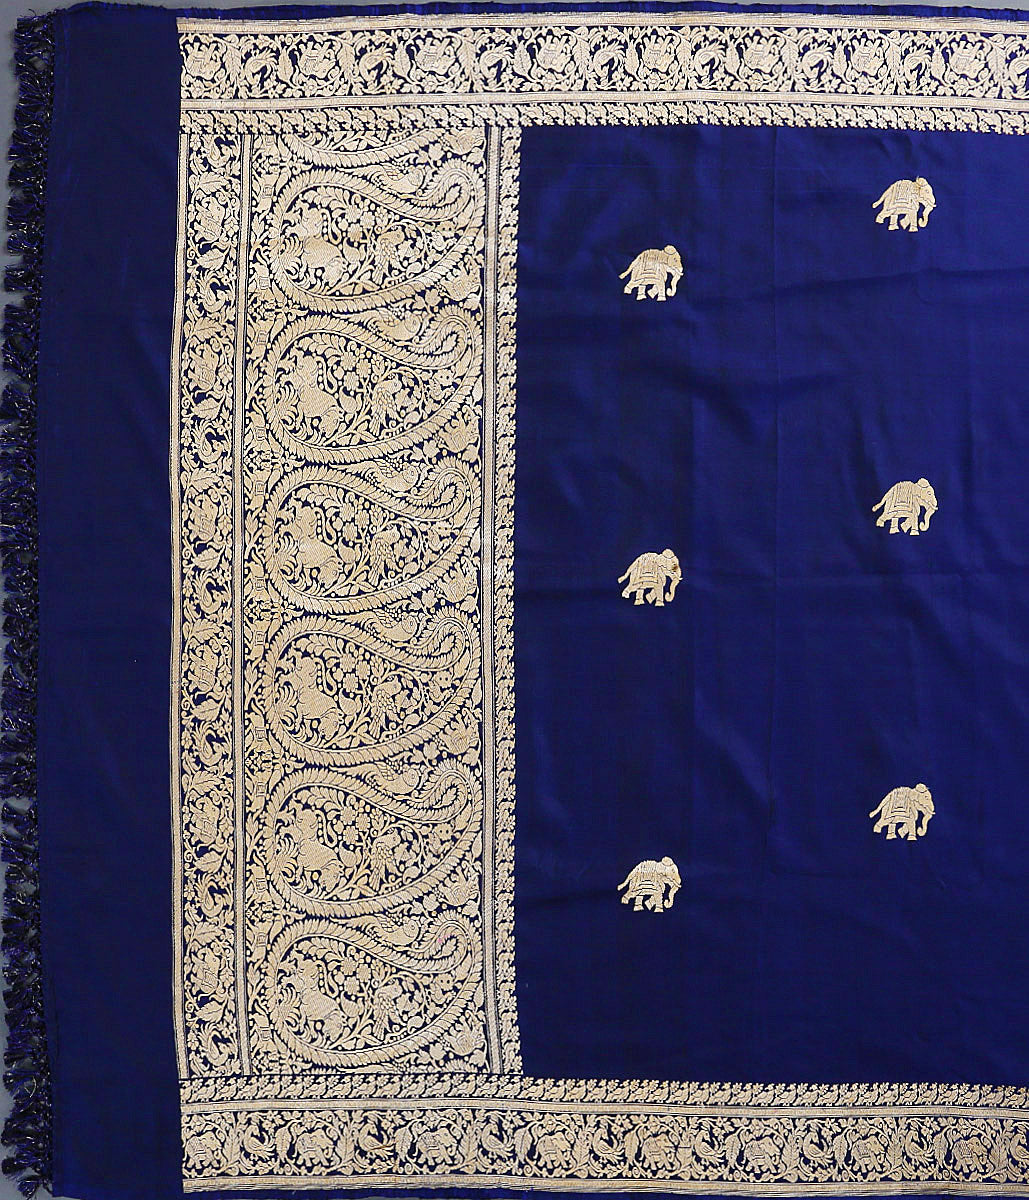 Handwoven Navy Blue Shikargah Border Dupatta with Elephant Motifs